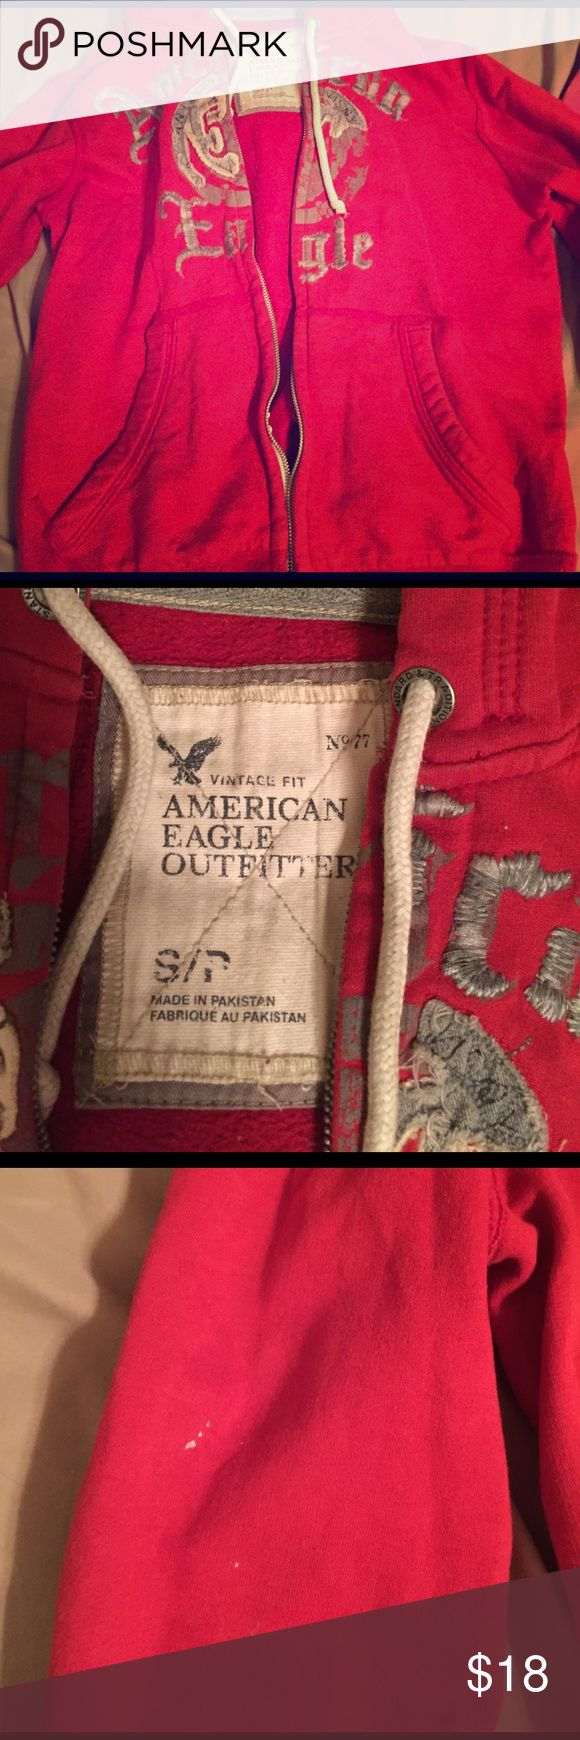 American Eagle Jacket Men's American Eagle jacket. Used condition. A few very small stains. Very warm and comfy jacket. No rips or tears. Make offer American Eagle Outfitters Jackets & Coats